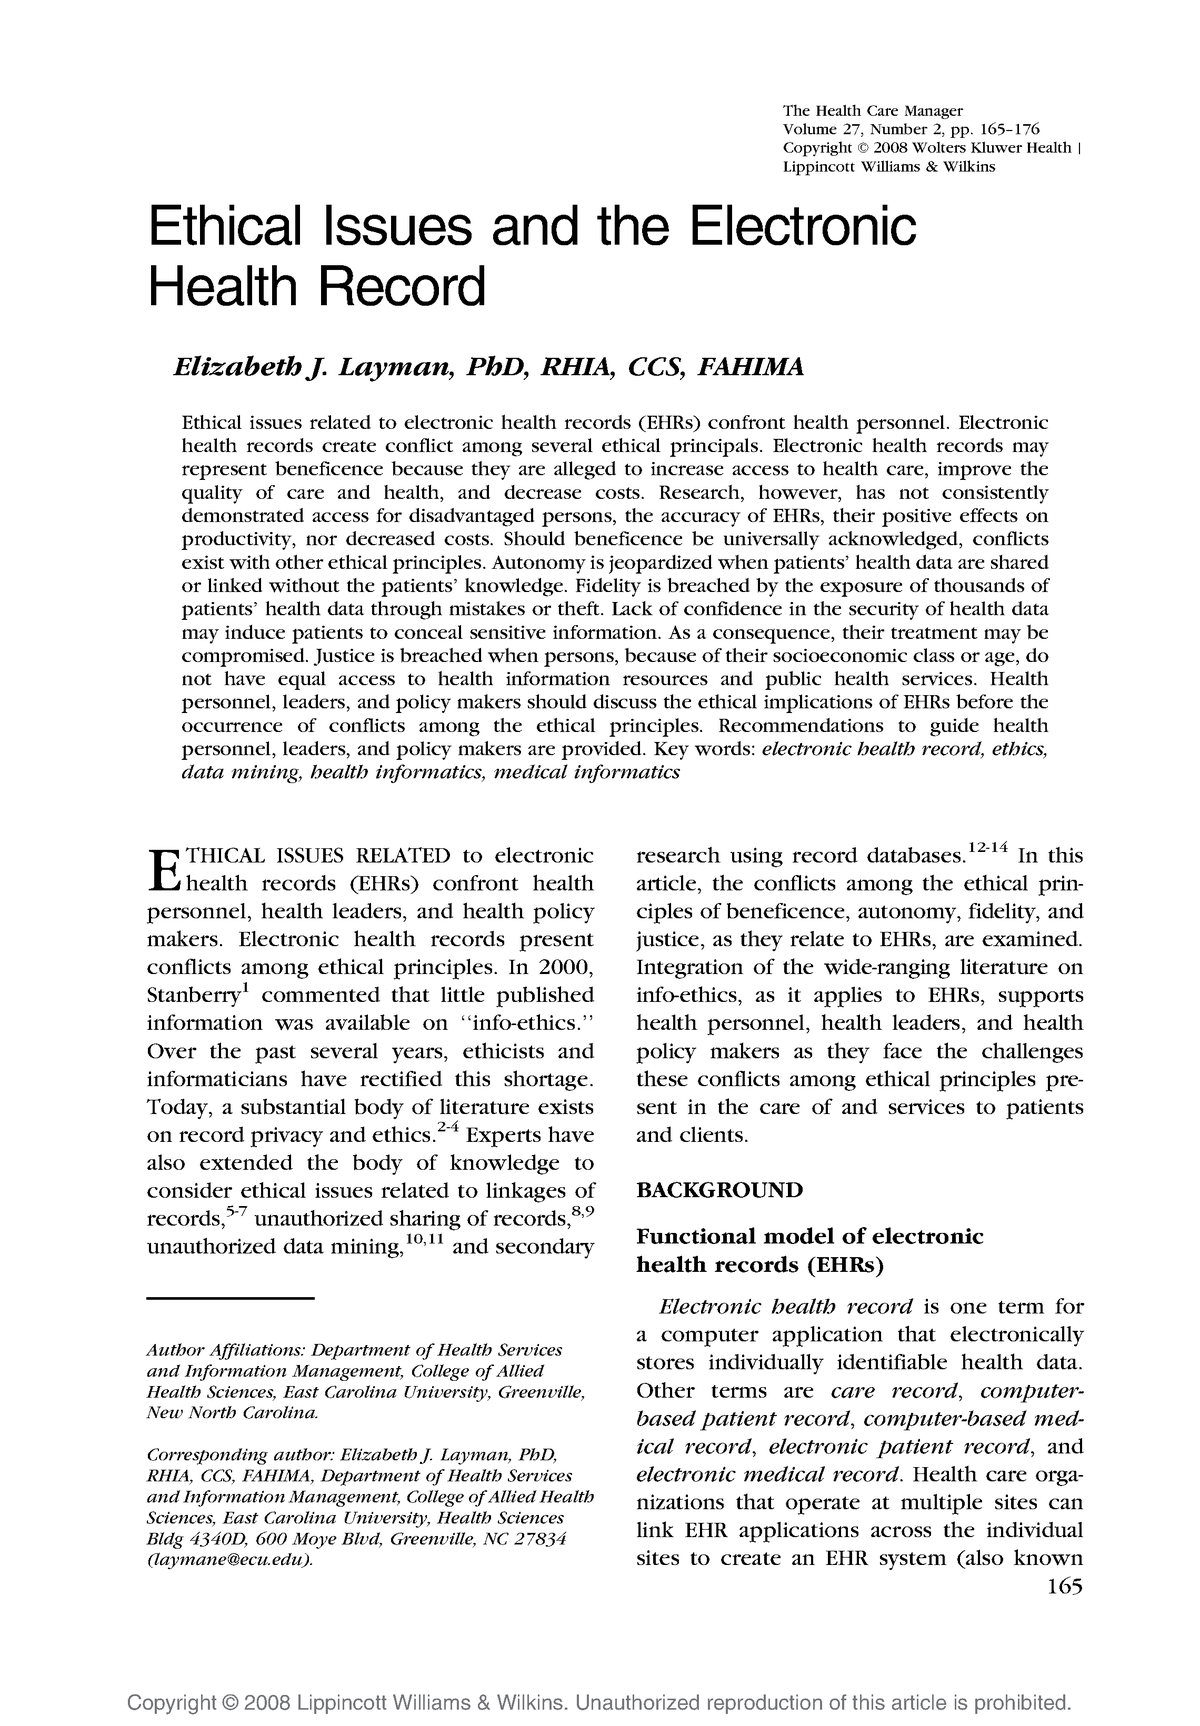 Ethical Issues and the Electronic Health Record - - StuDocu